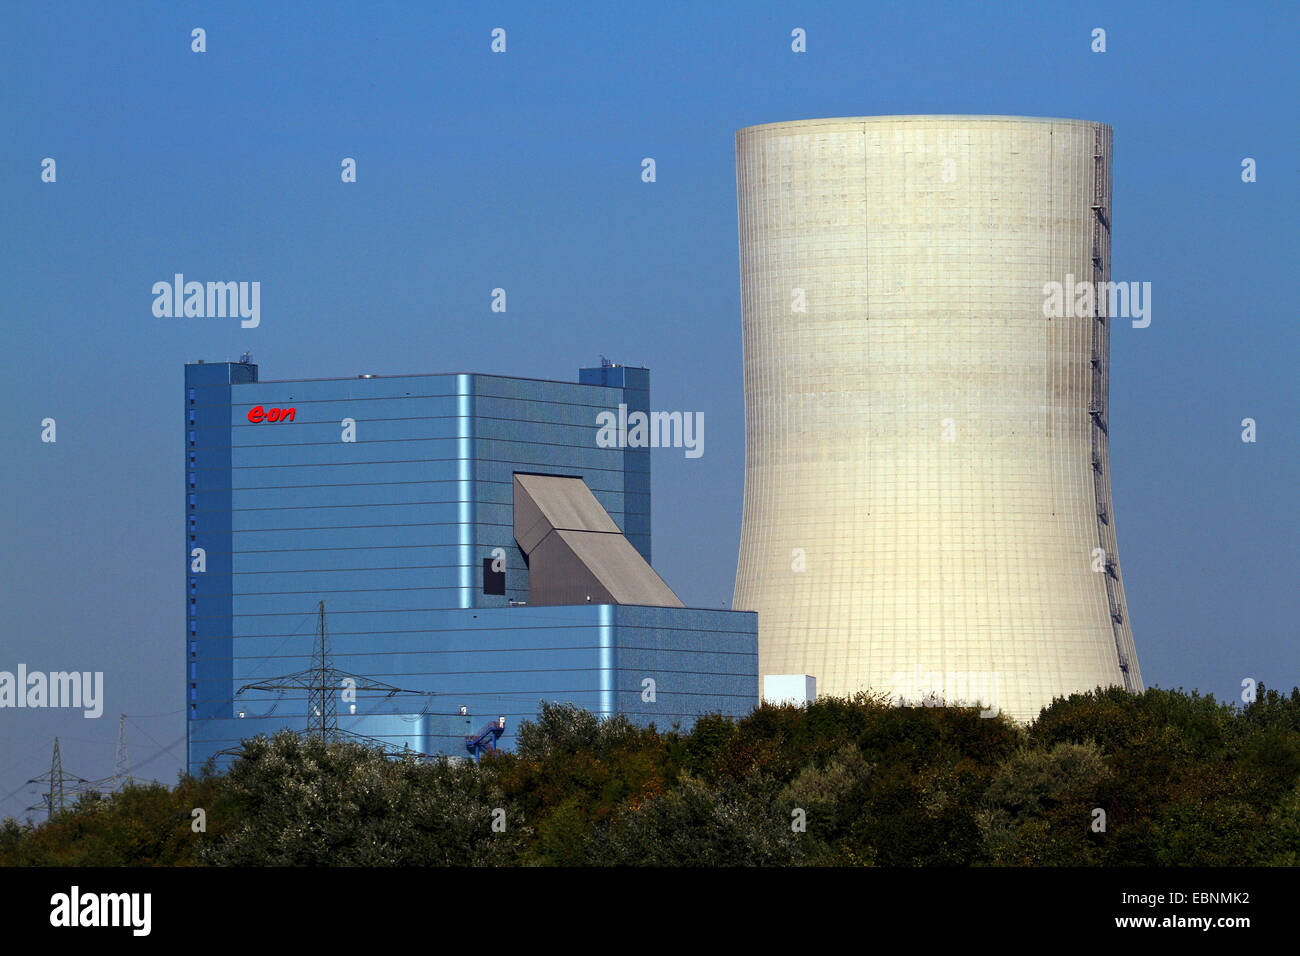 the legally controversial new building of the hard coal-fired power station Datteln 4, Germany, North Rhine-Westphalia, - Stock Image